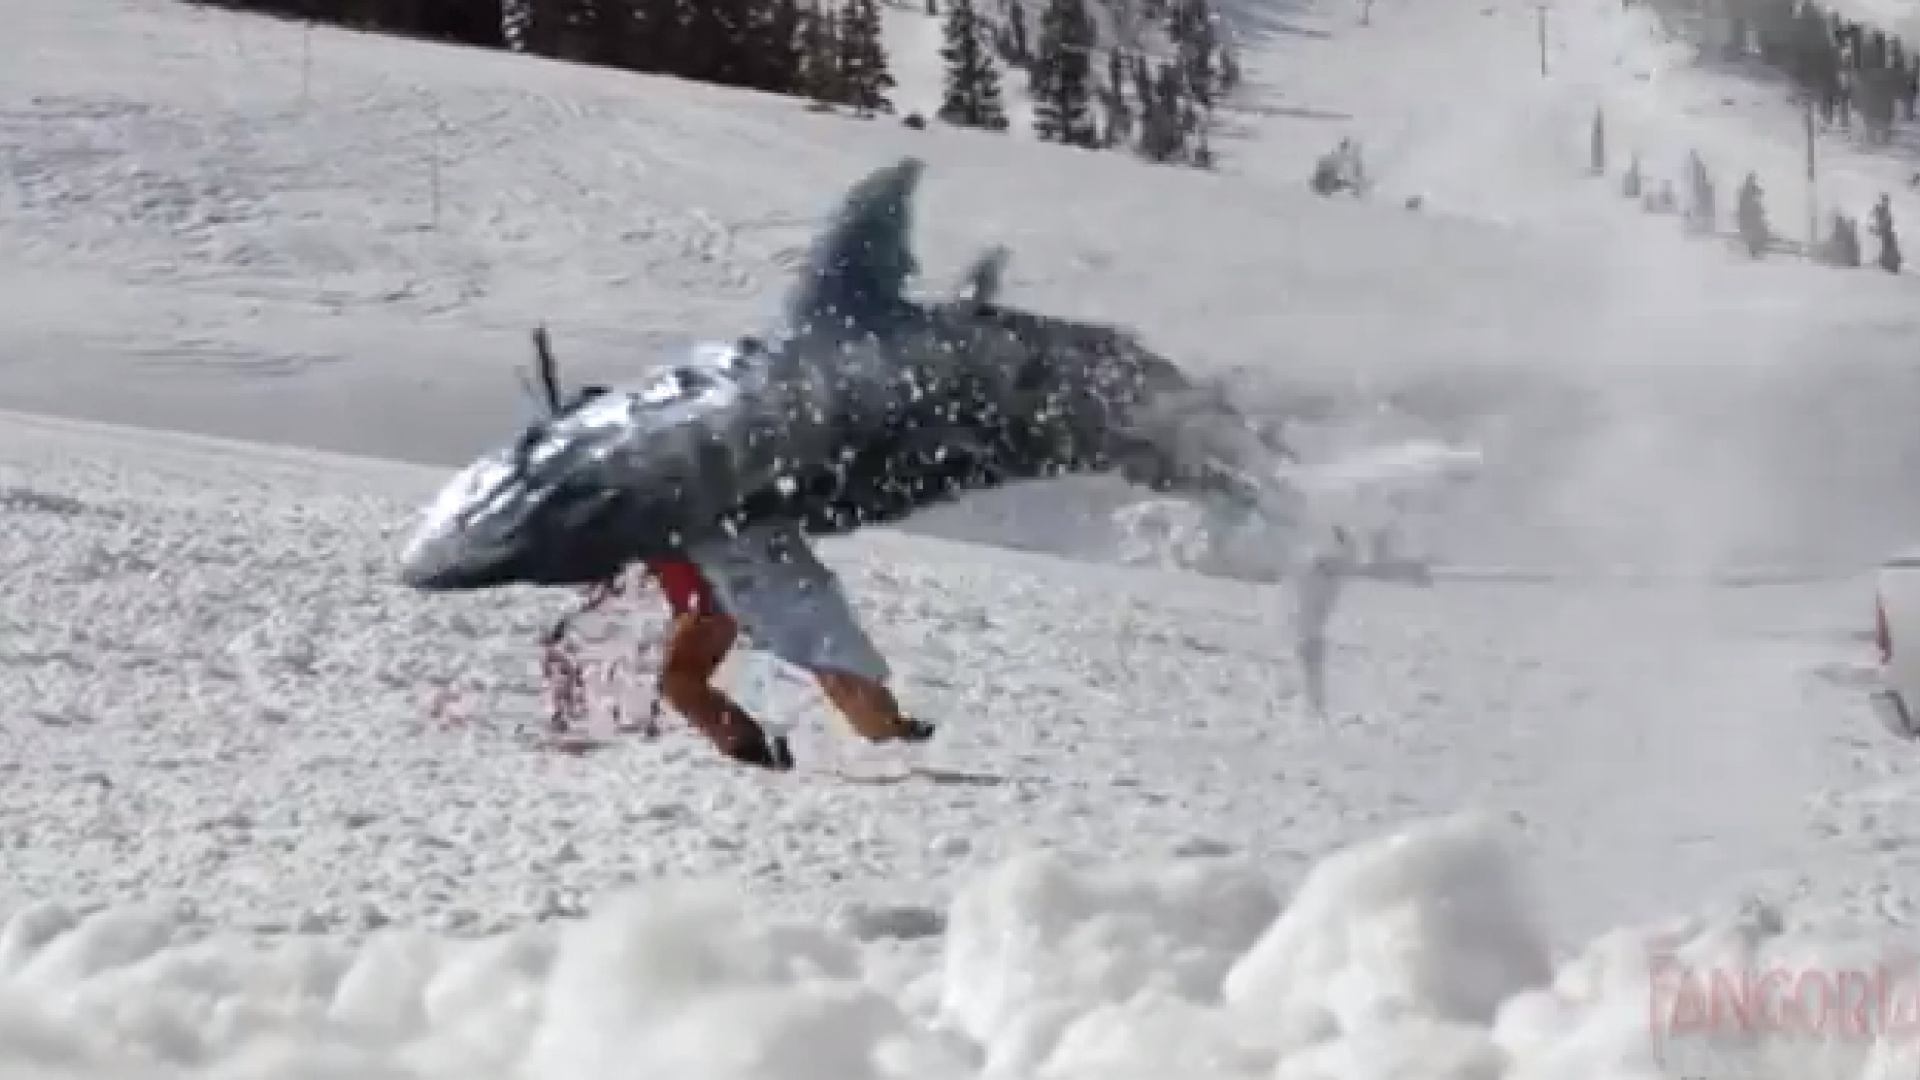 Shark attack scene from Avalanche Sharks (2013)